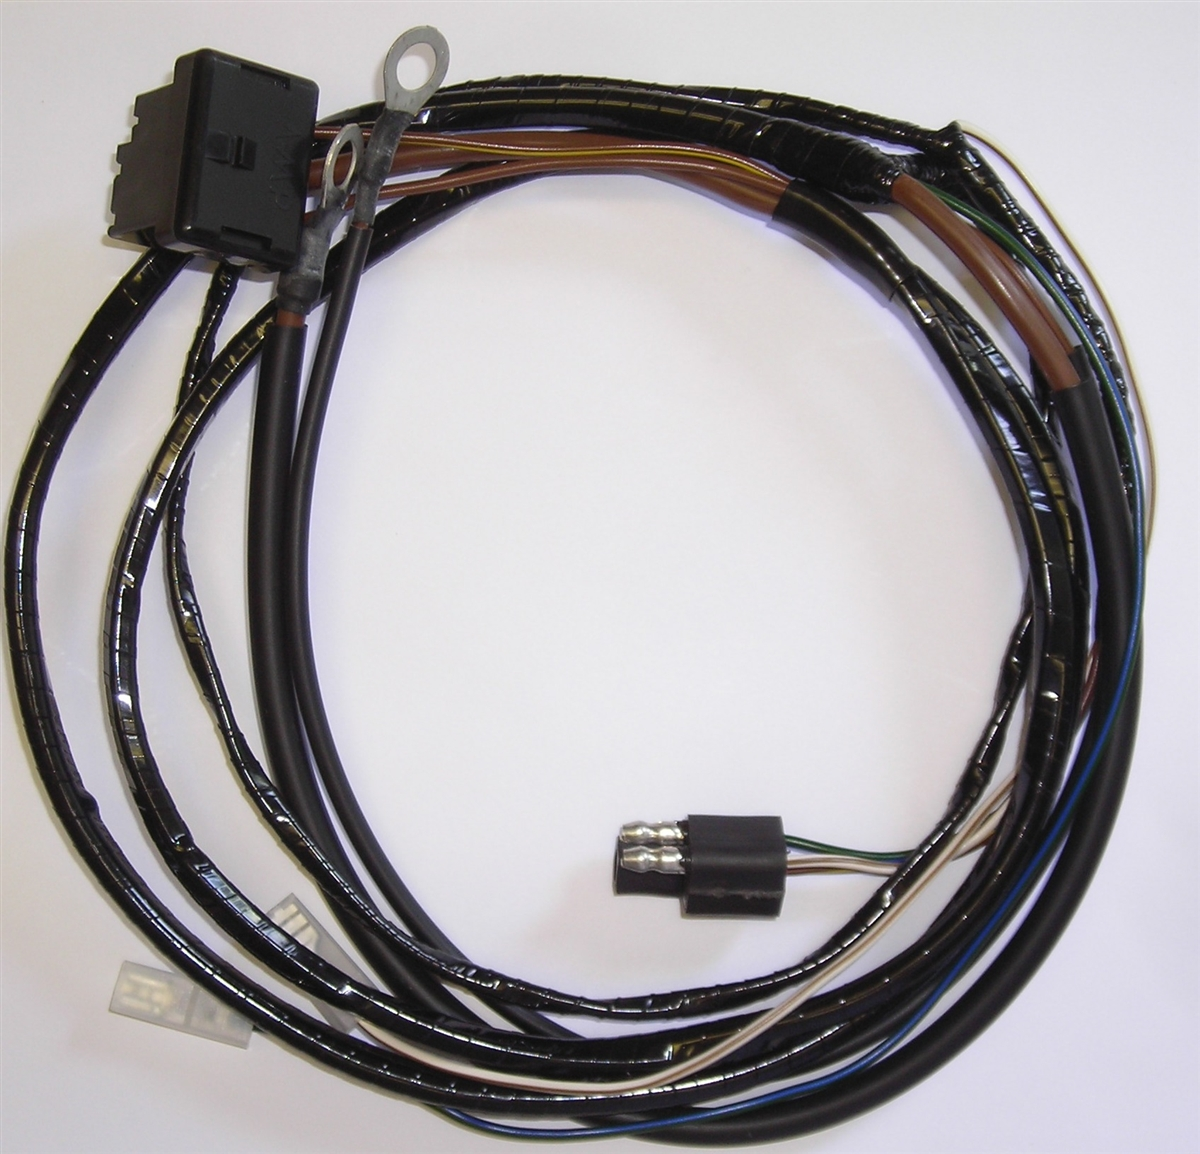 LR333 2?1402649052 rover diesel engine wiring harness land rover wiring harness at panicattacktreatment.co